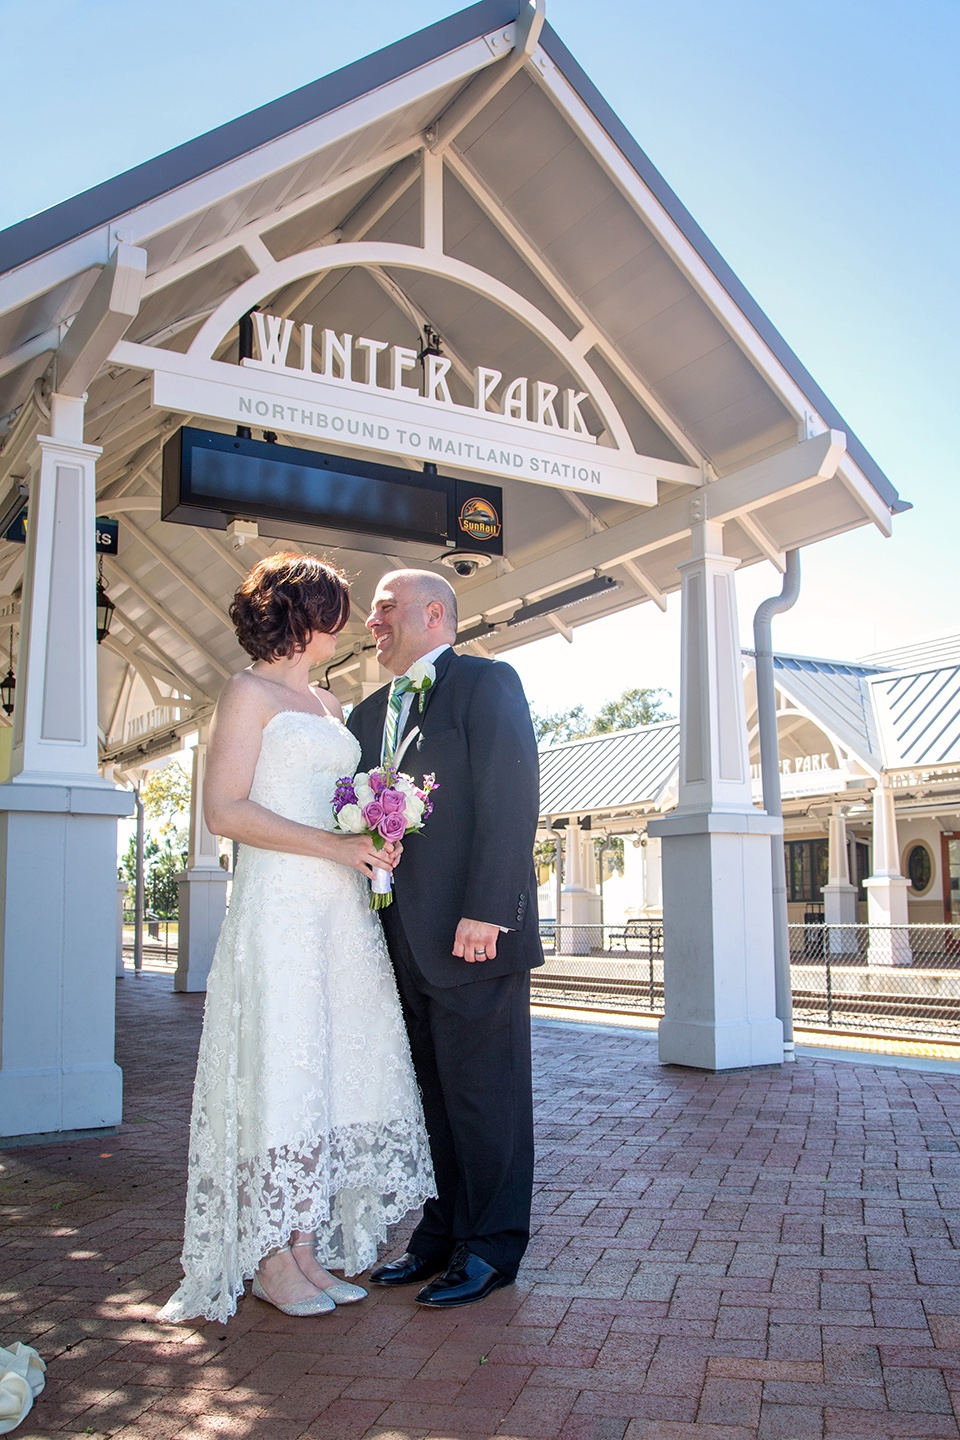 A beautiful place to get married in Florida